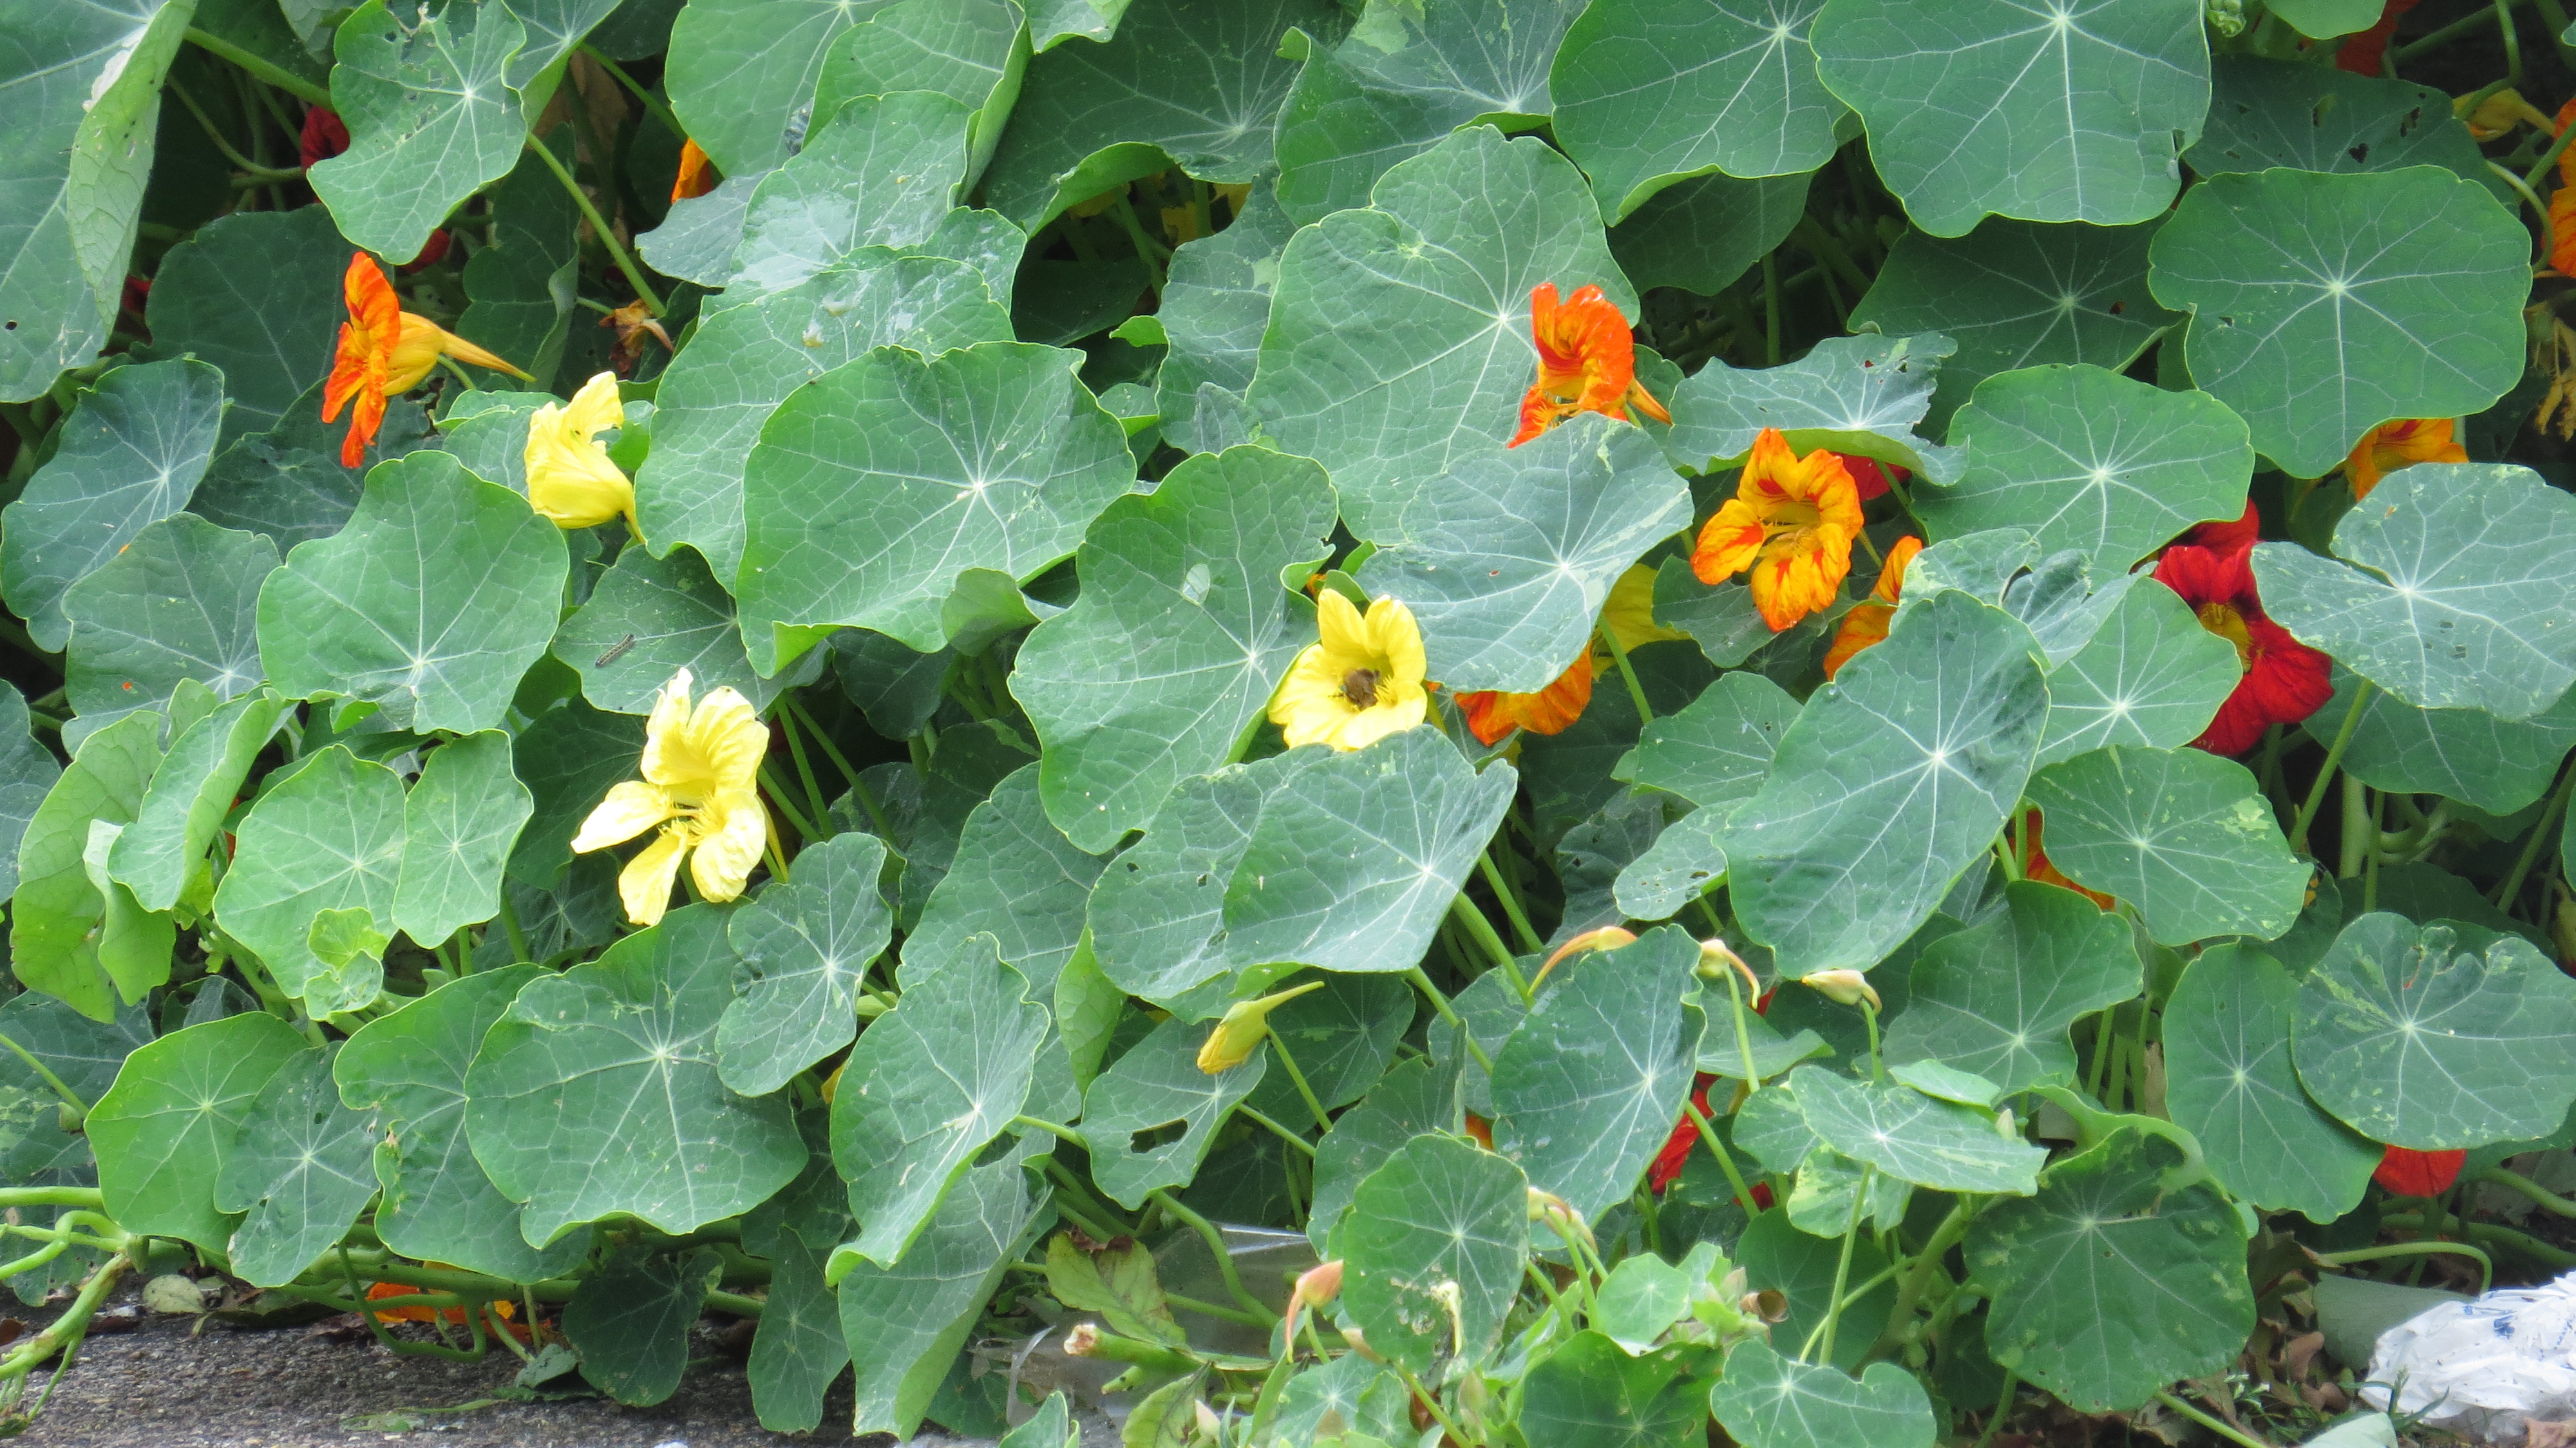 Buy culinary herbs plants nasturtium plants - I Have Mentioned That Nasturtiums Attract A Lot Of Aphids And One Reason For Planting This Exotic Looking Interloper Is As A Companion Plant As The Aphids